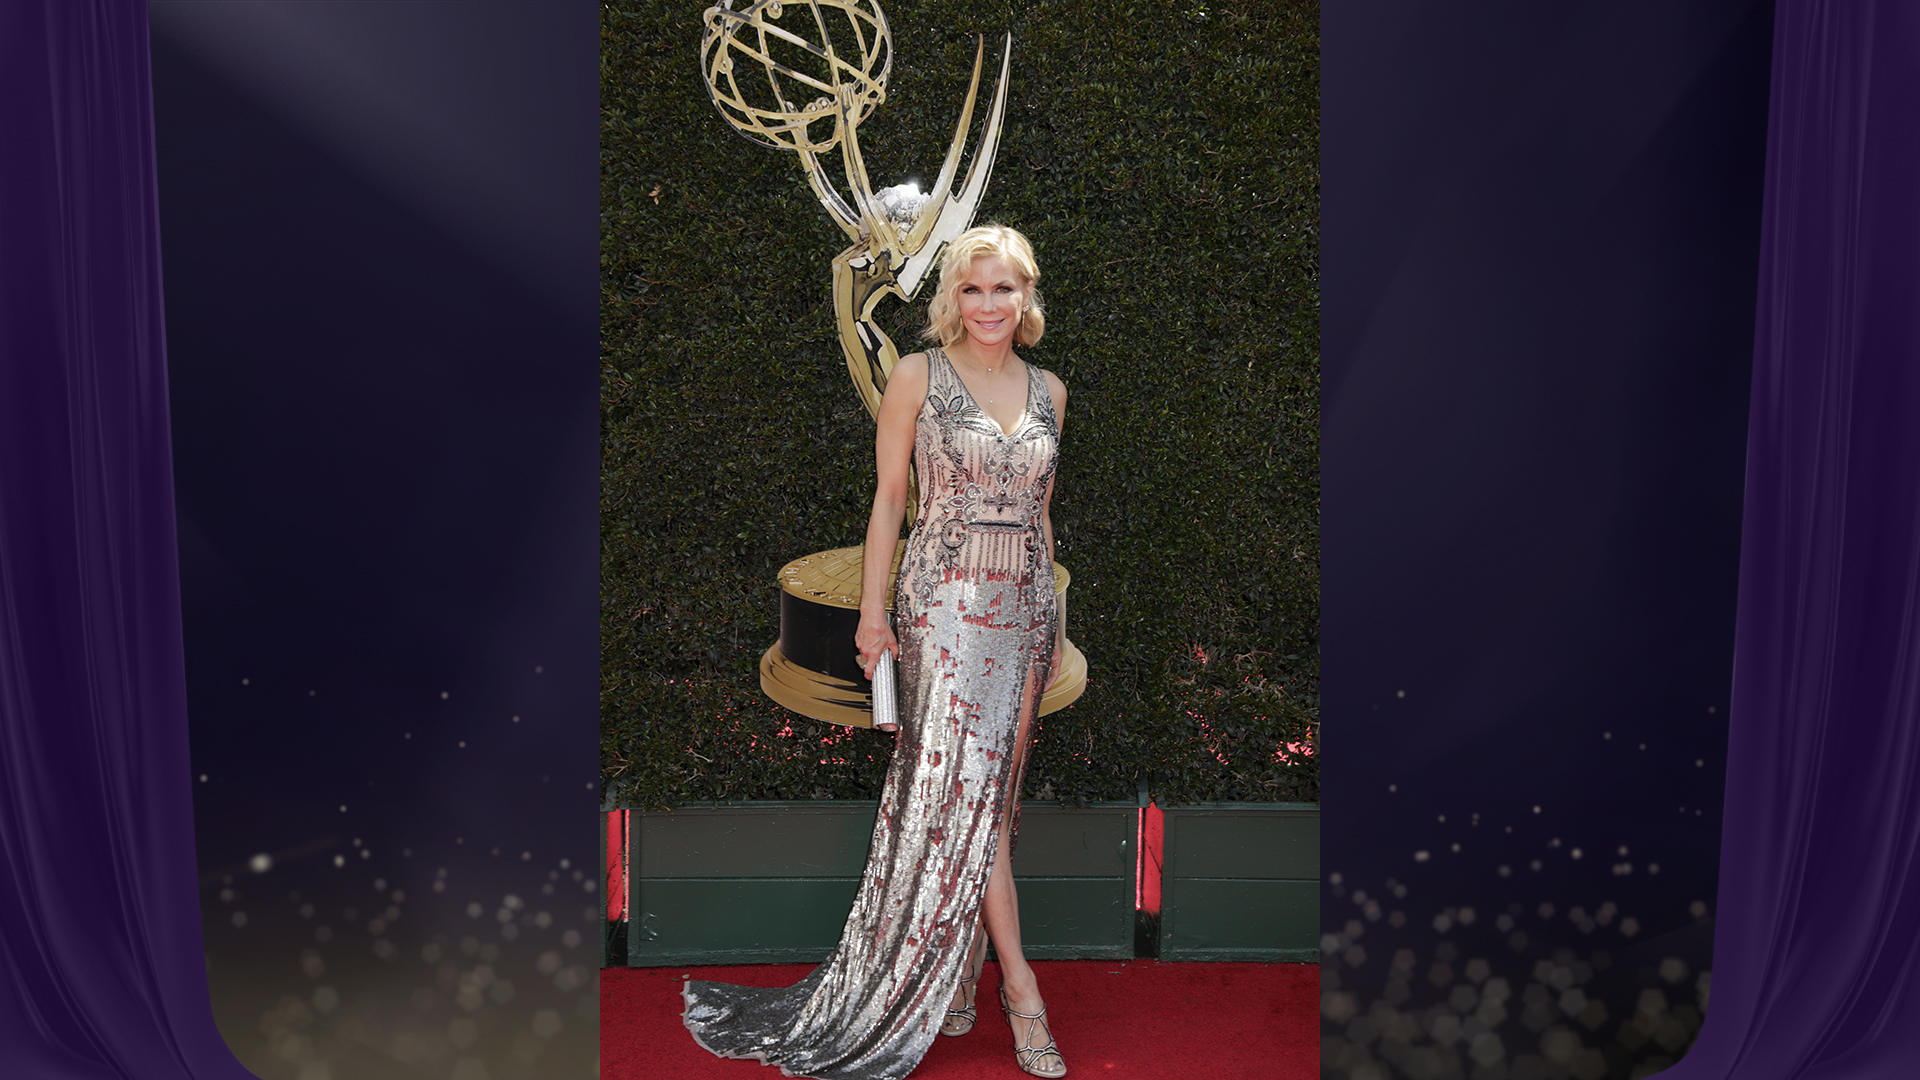 Katherine Kelly Lang from The Bold and the Beautiful is positively statuesque in this metallic floor-length sequin gown.